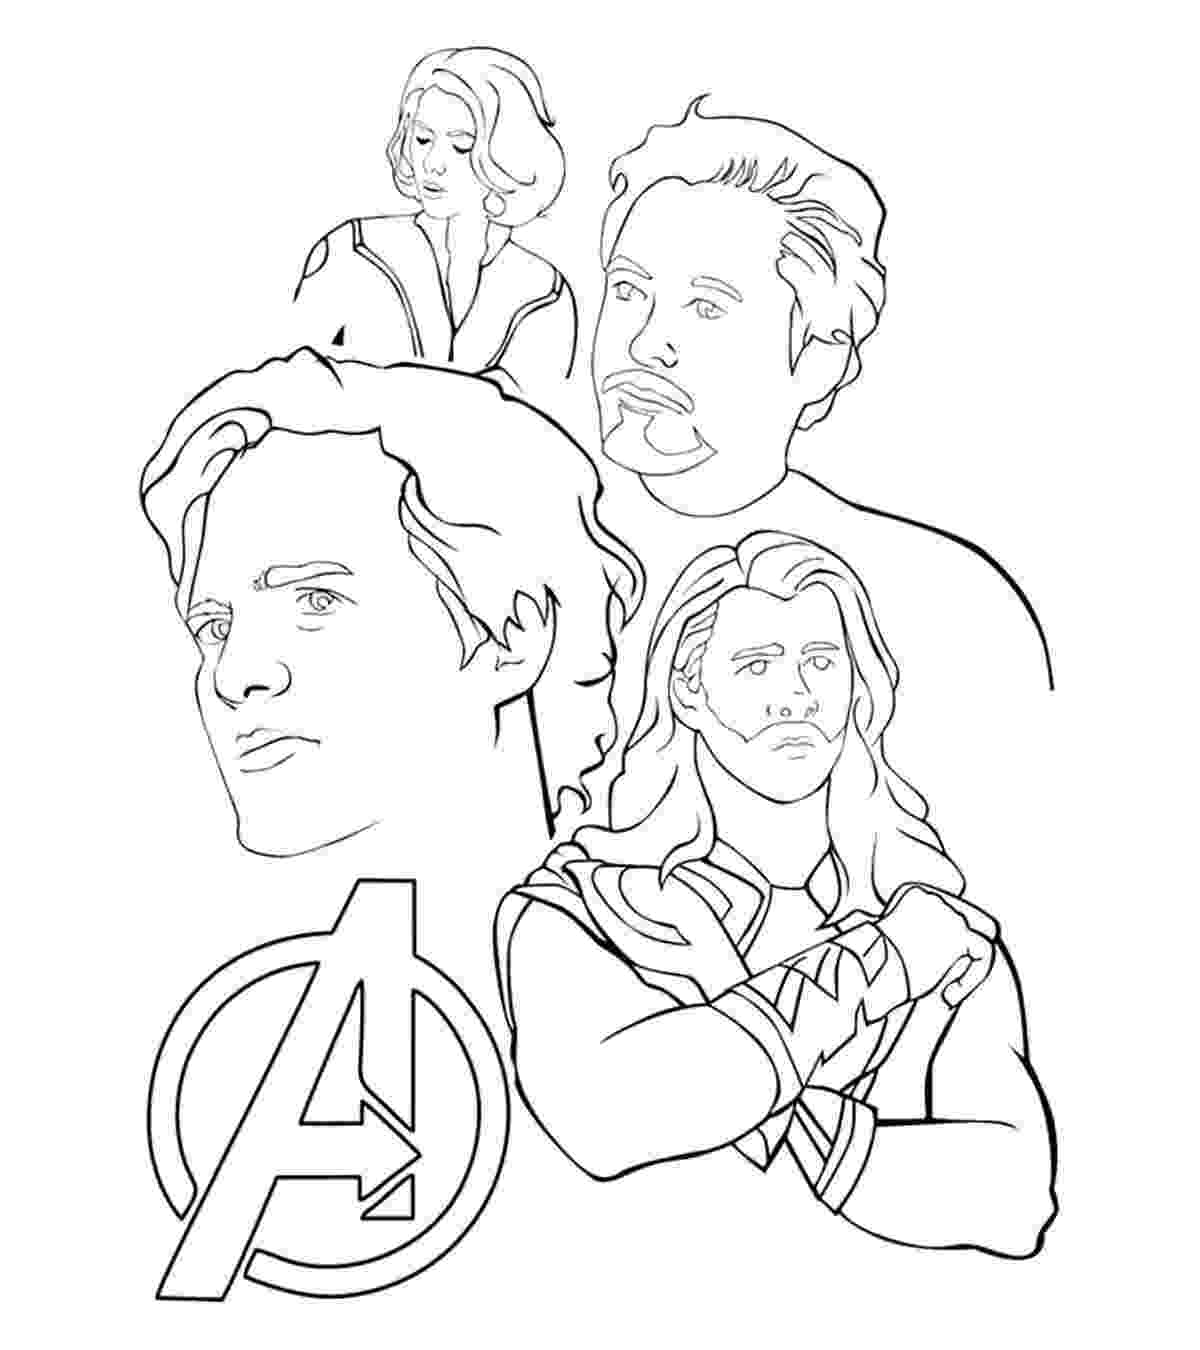 avengers coloring sheet 46 avengers birthday party ideas food and superhero sheet avengers coloring